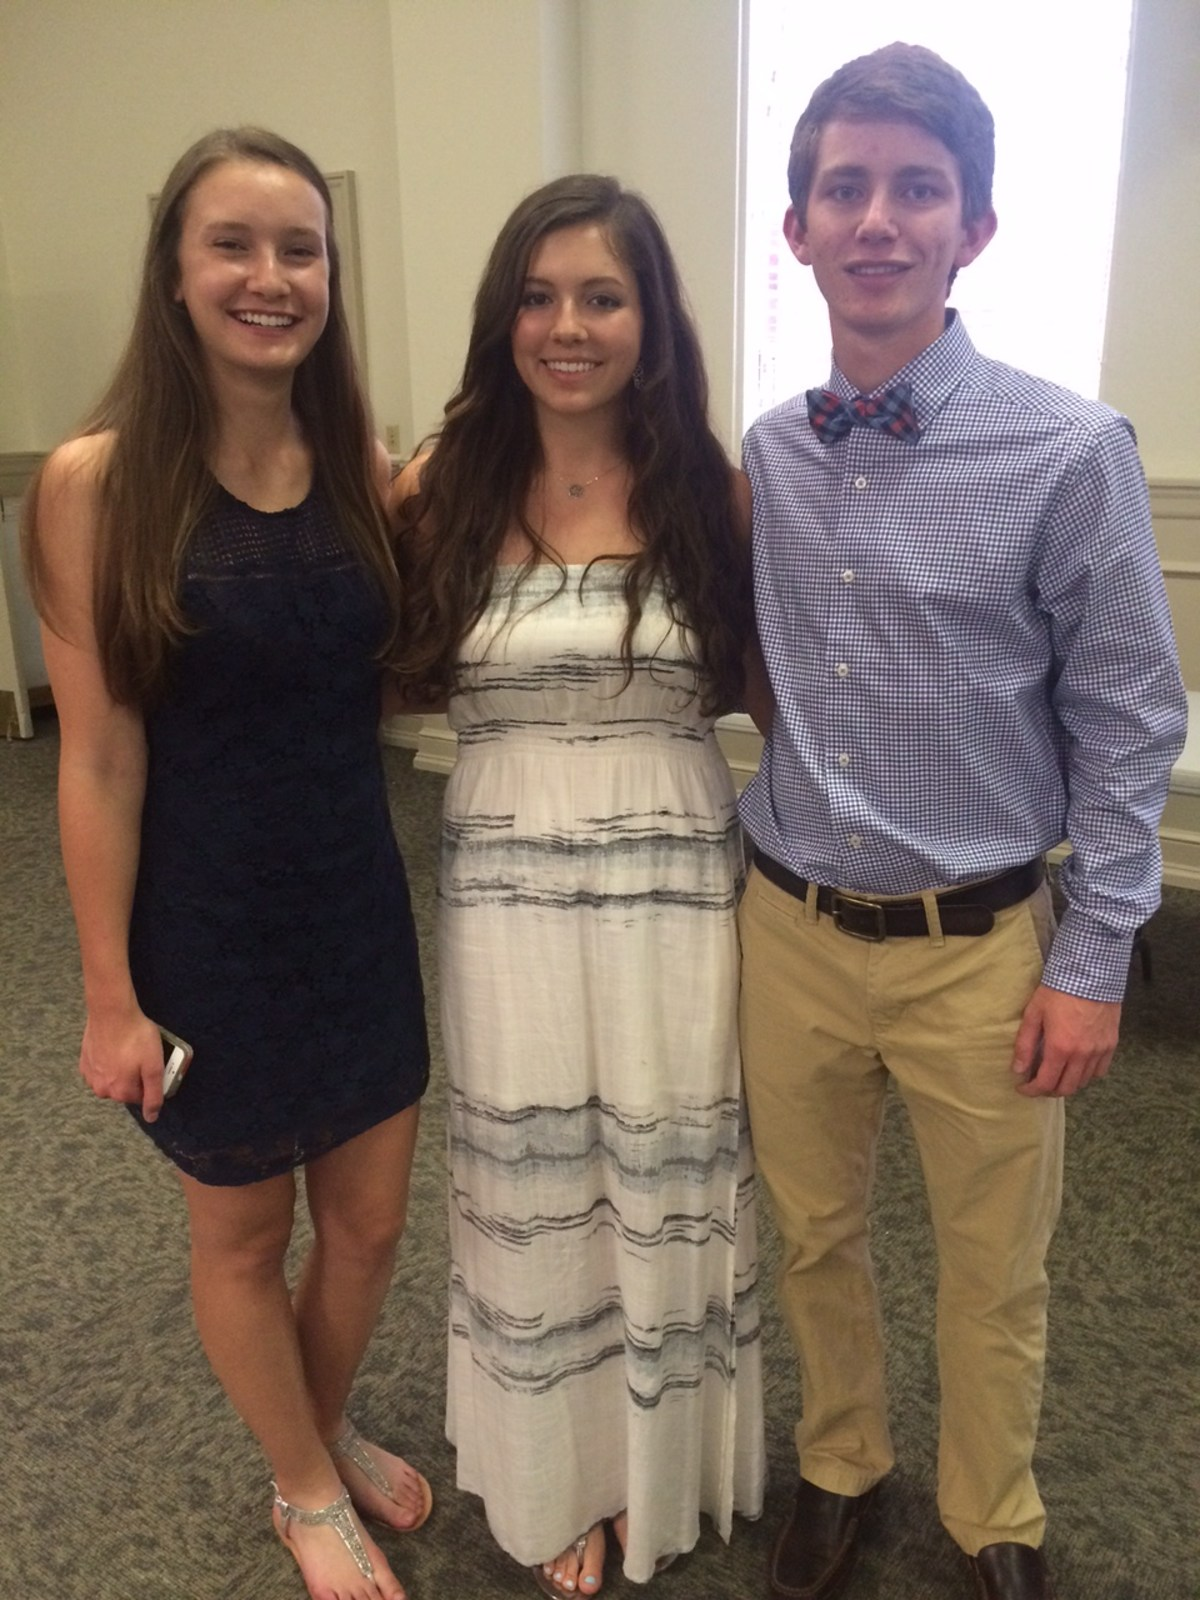 Tennis players at banquet